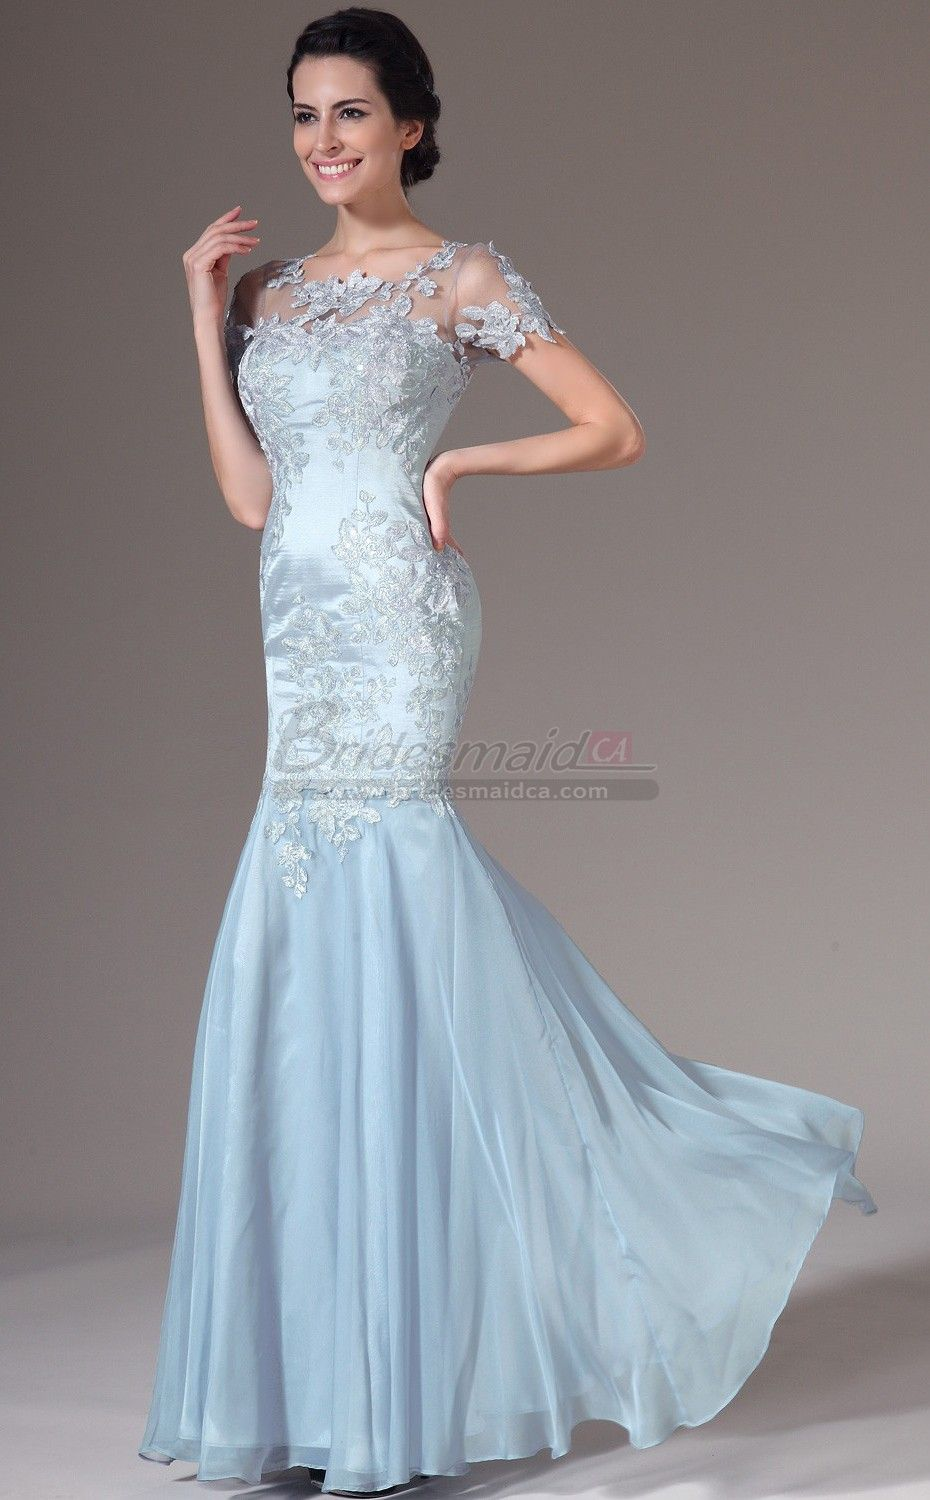 Sky Blue Chiffon and Lace Long Scoop Neck Mermaid Bridesmaid Dress ...